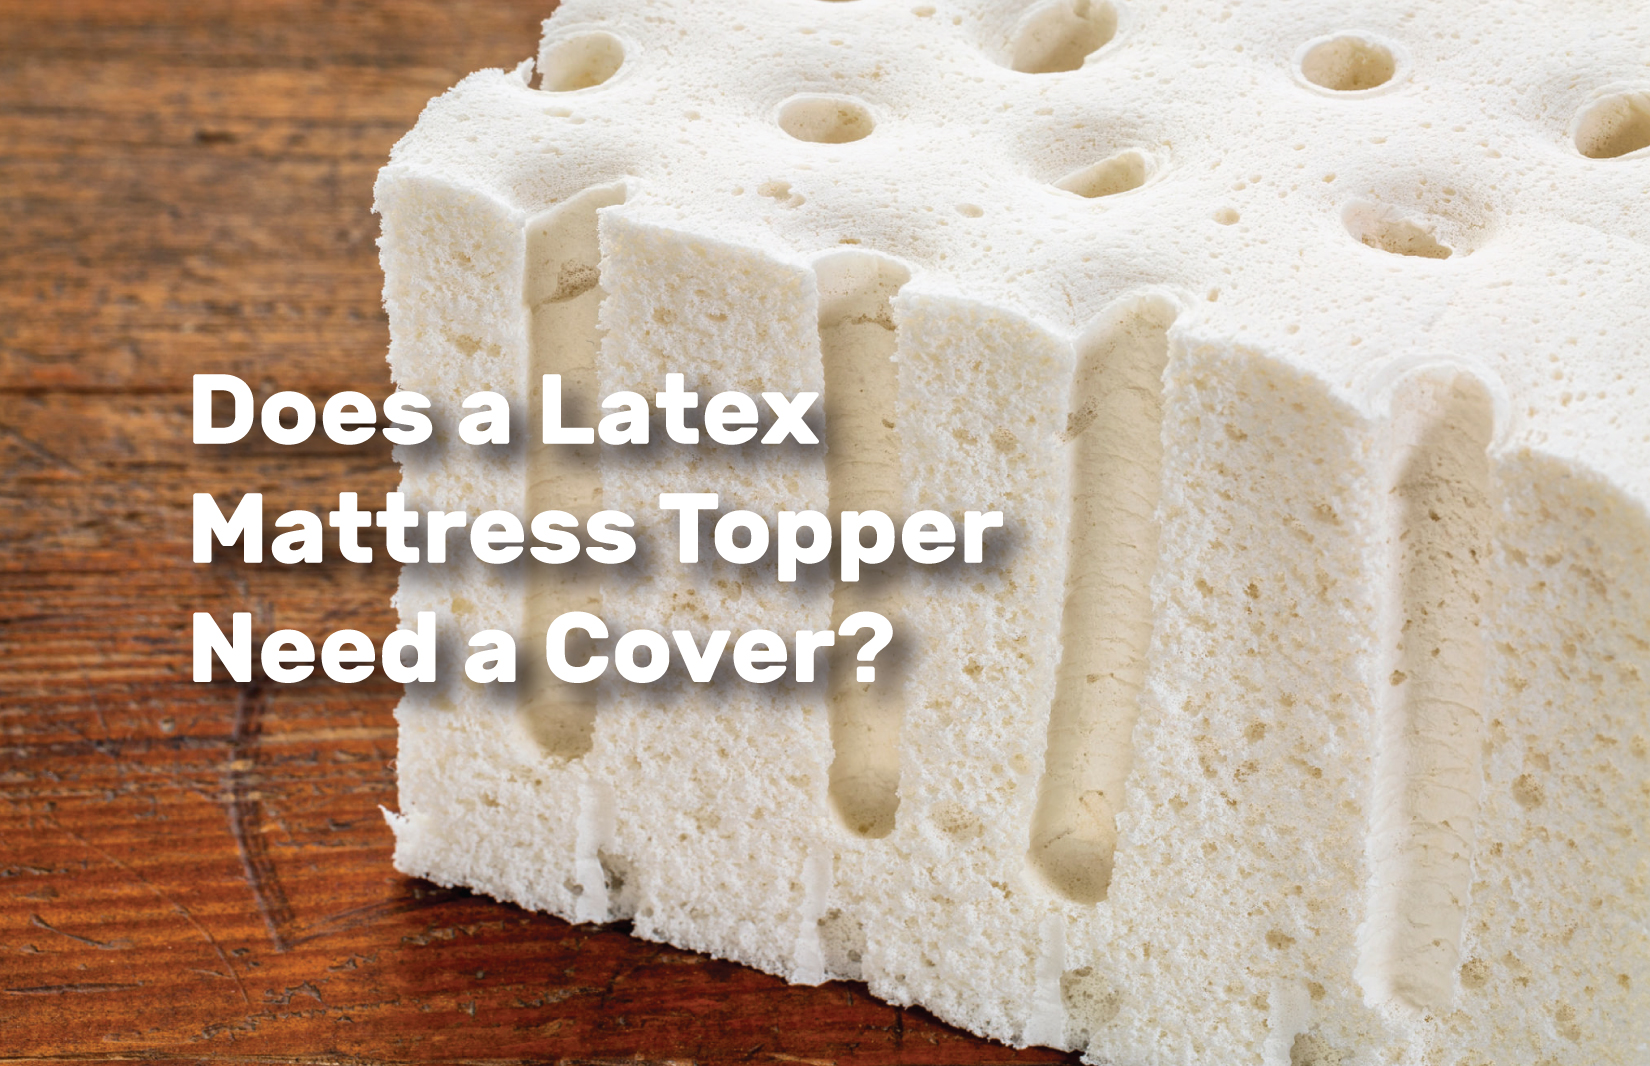 Does-a-Latex-Mattress-Topper-Need-a-Cover realestateke